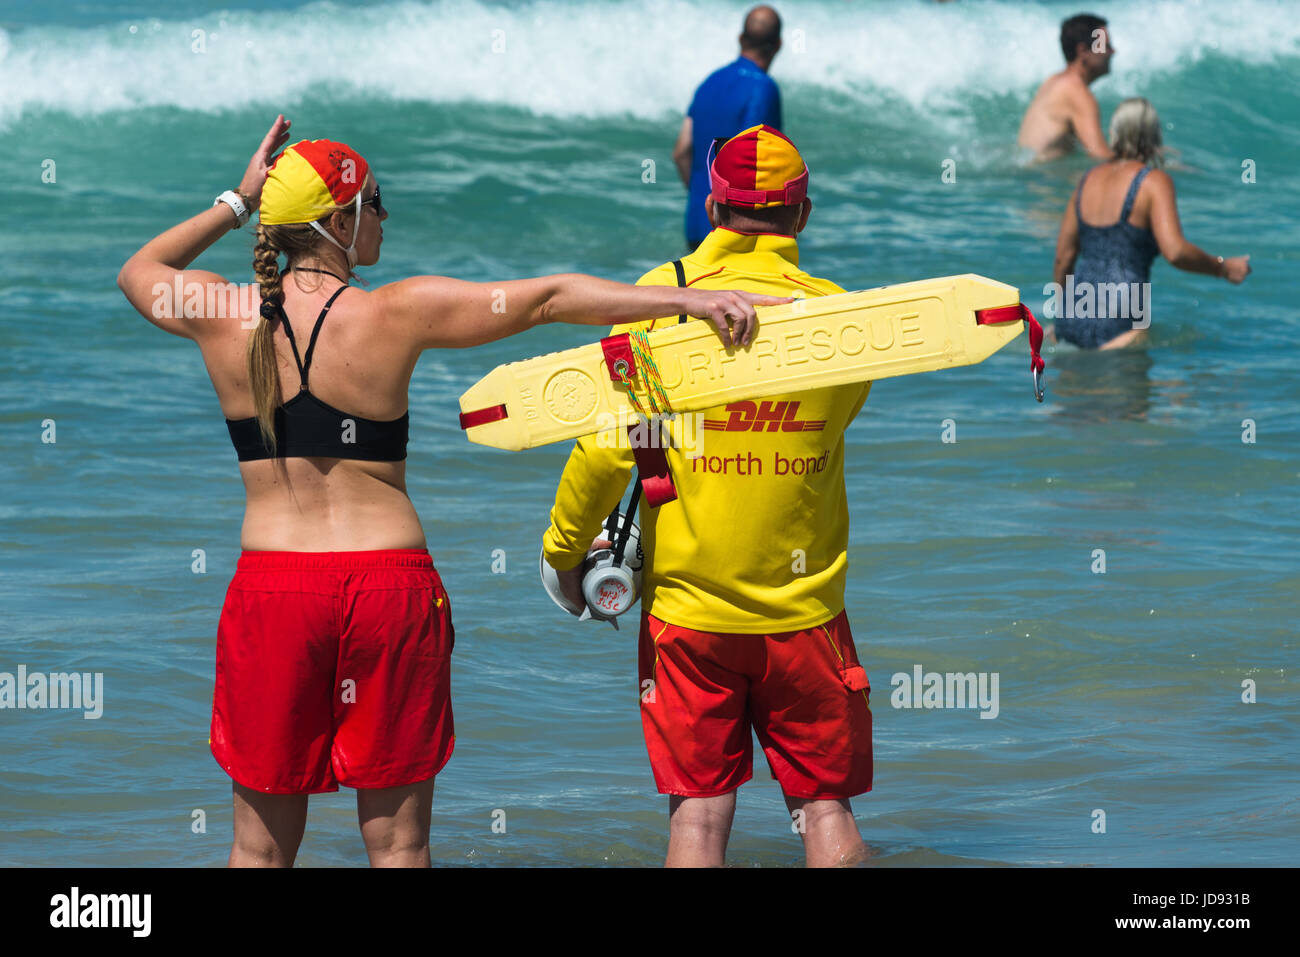 Lifeguards actively watching bathers ahead as the waves hit. Bondi beach. Sydney, Australia. - Stock Image